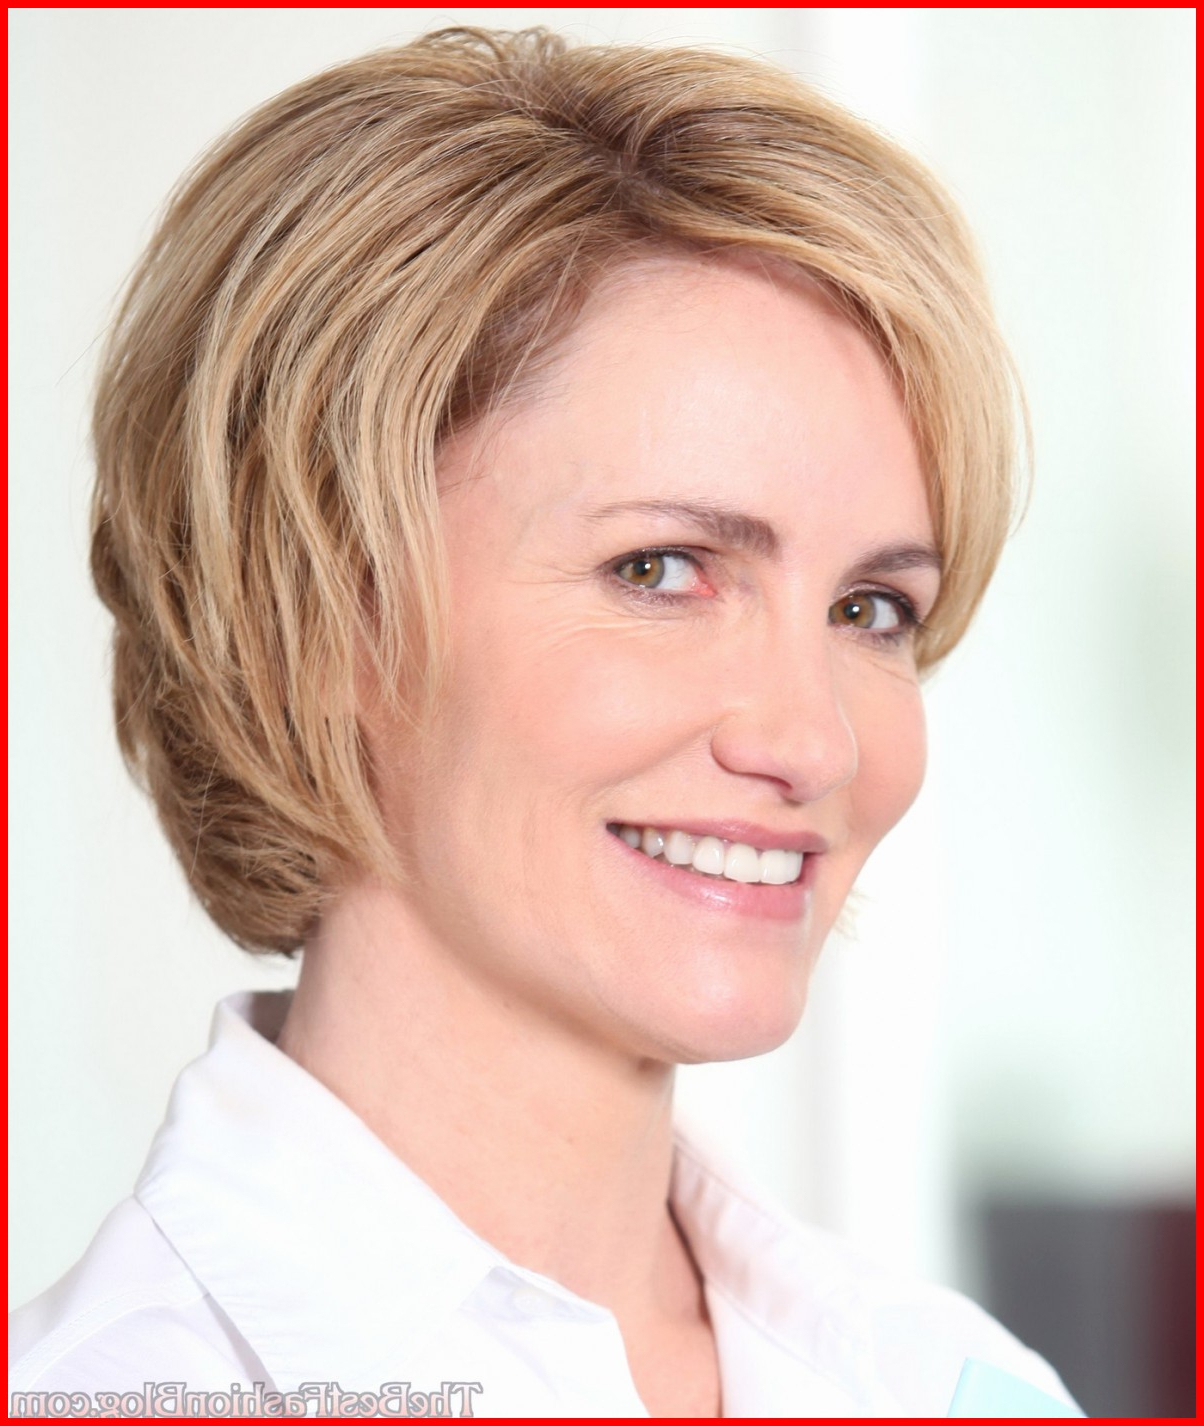 Hairstyles For Women 2015 158129 Bob Haircuts Women Over 50 For Short Haircuts For Women Over  (View 16 of 25)